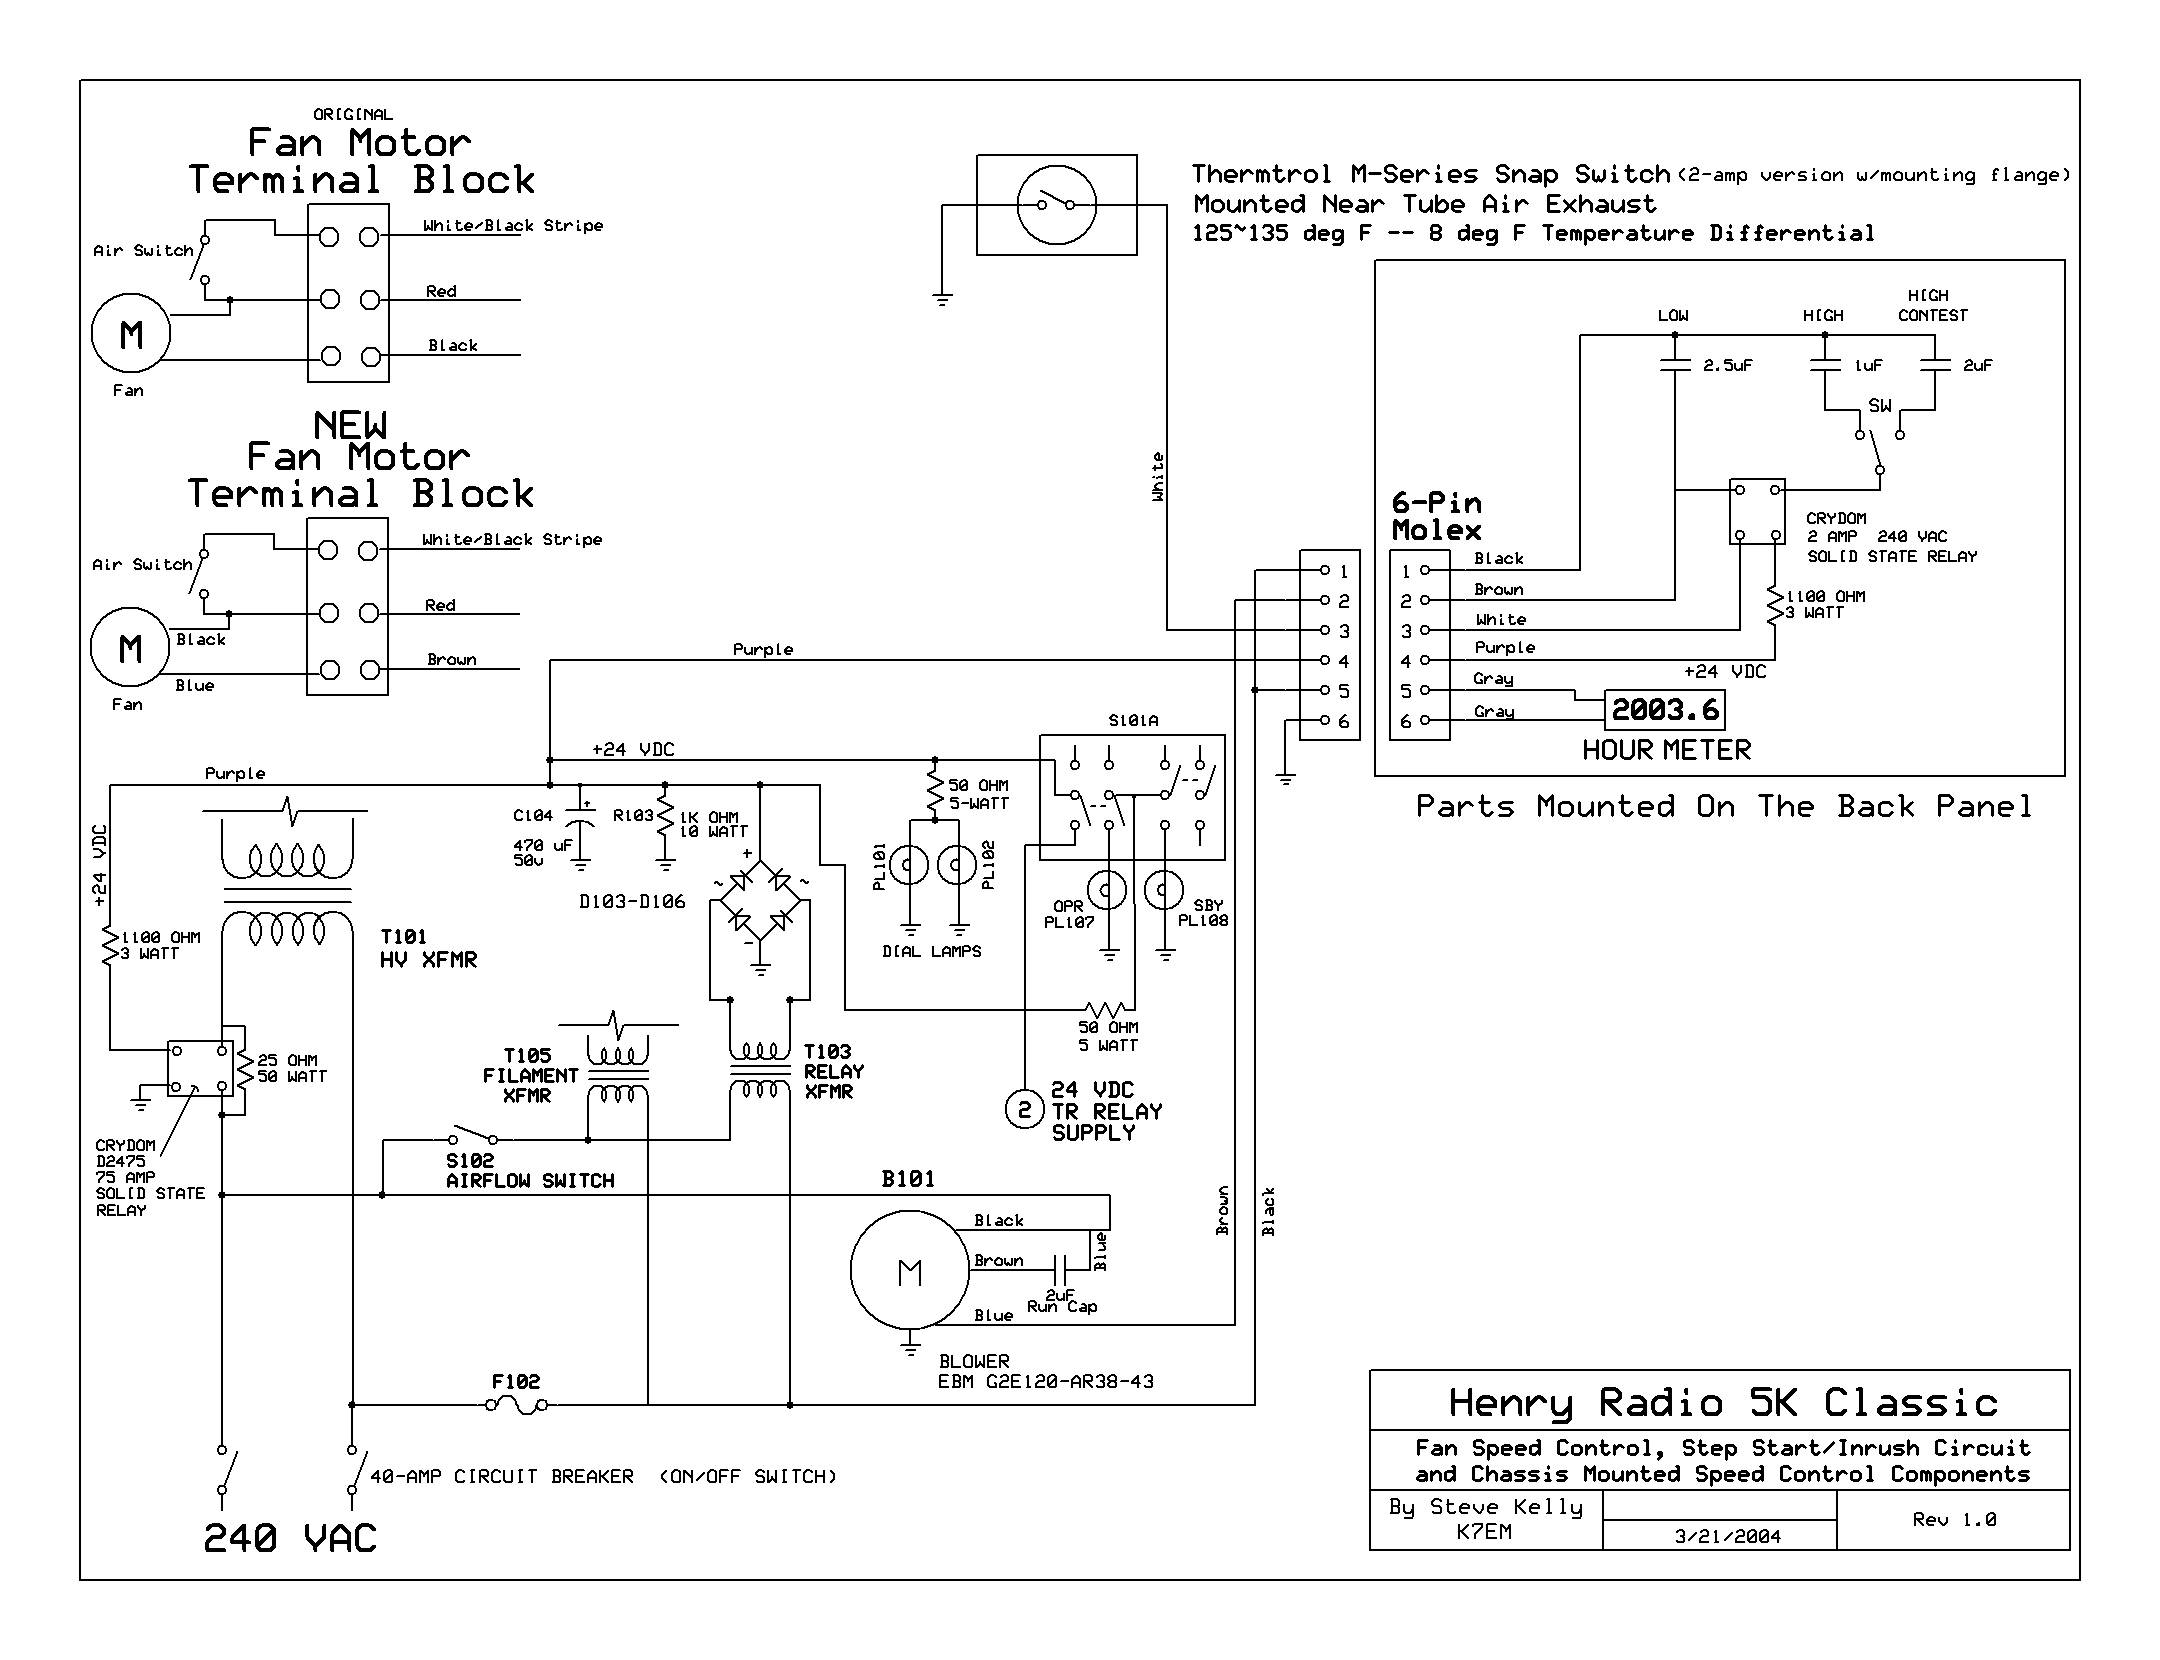 fan control center relay and transformer wiring diagram what is a mapping henry radio 5k classic blower modifications repository